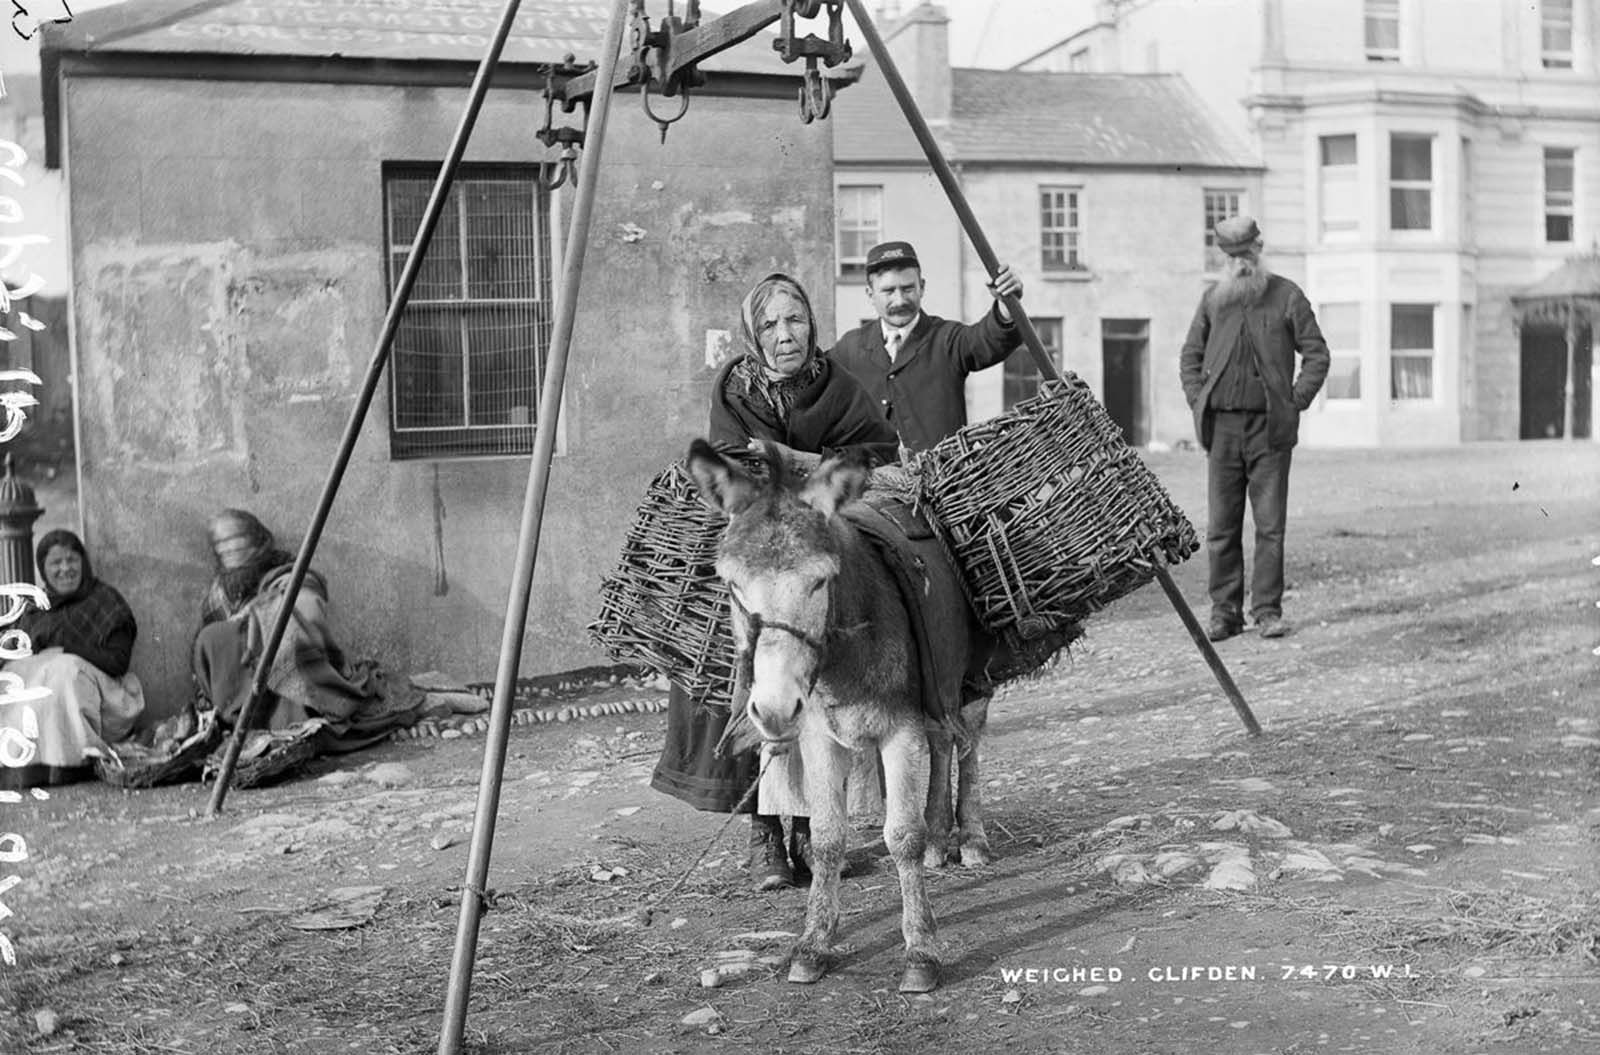 A weigh station in Clifden, County Galway. 1908.